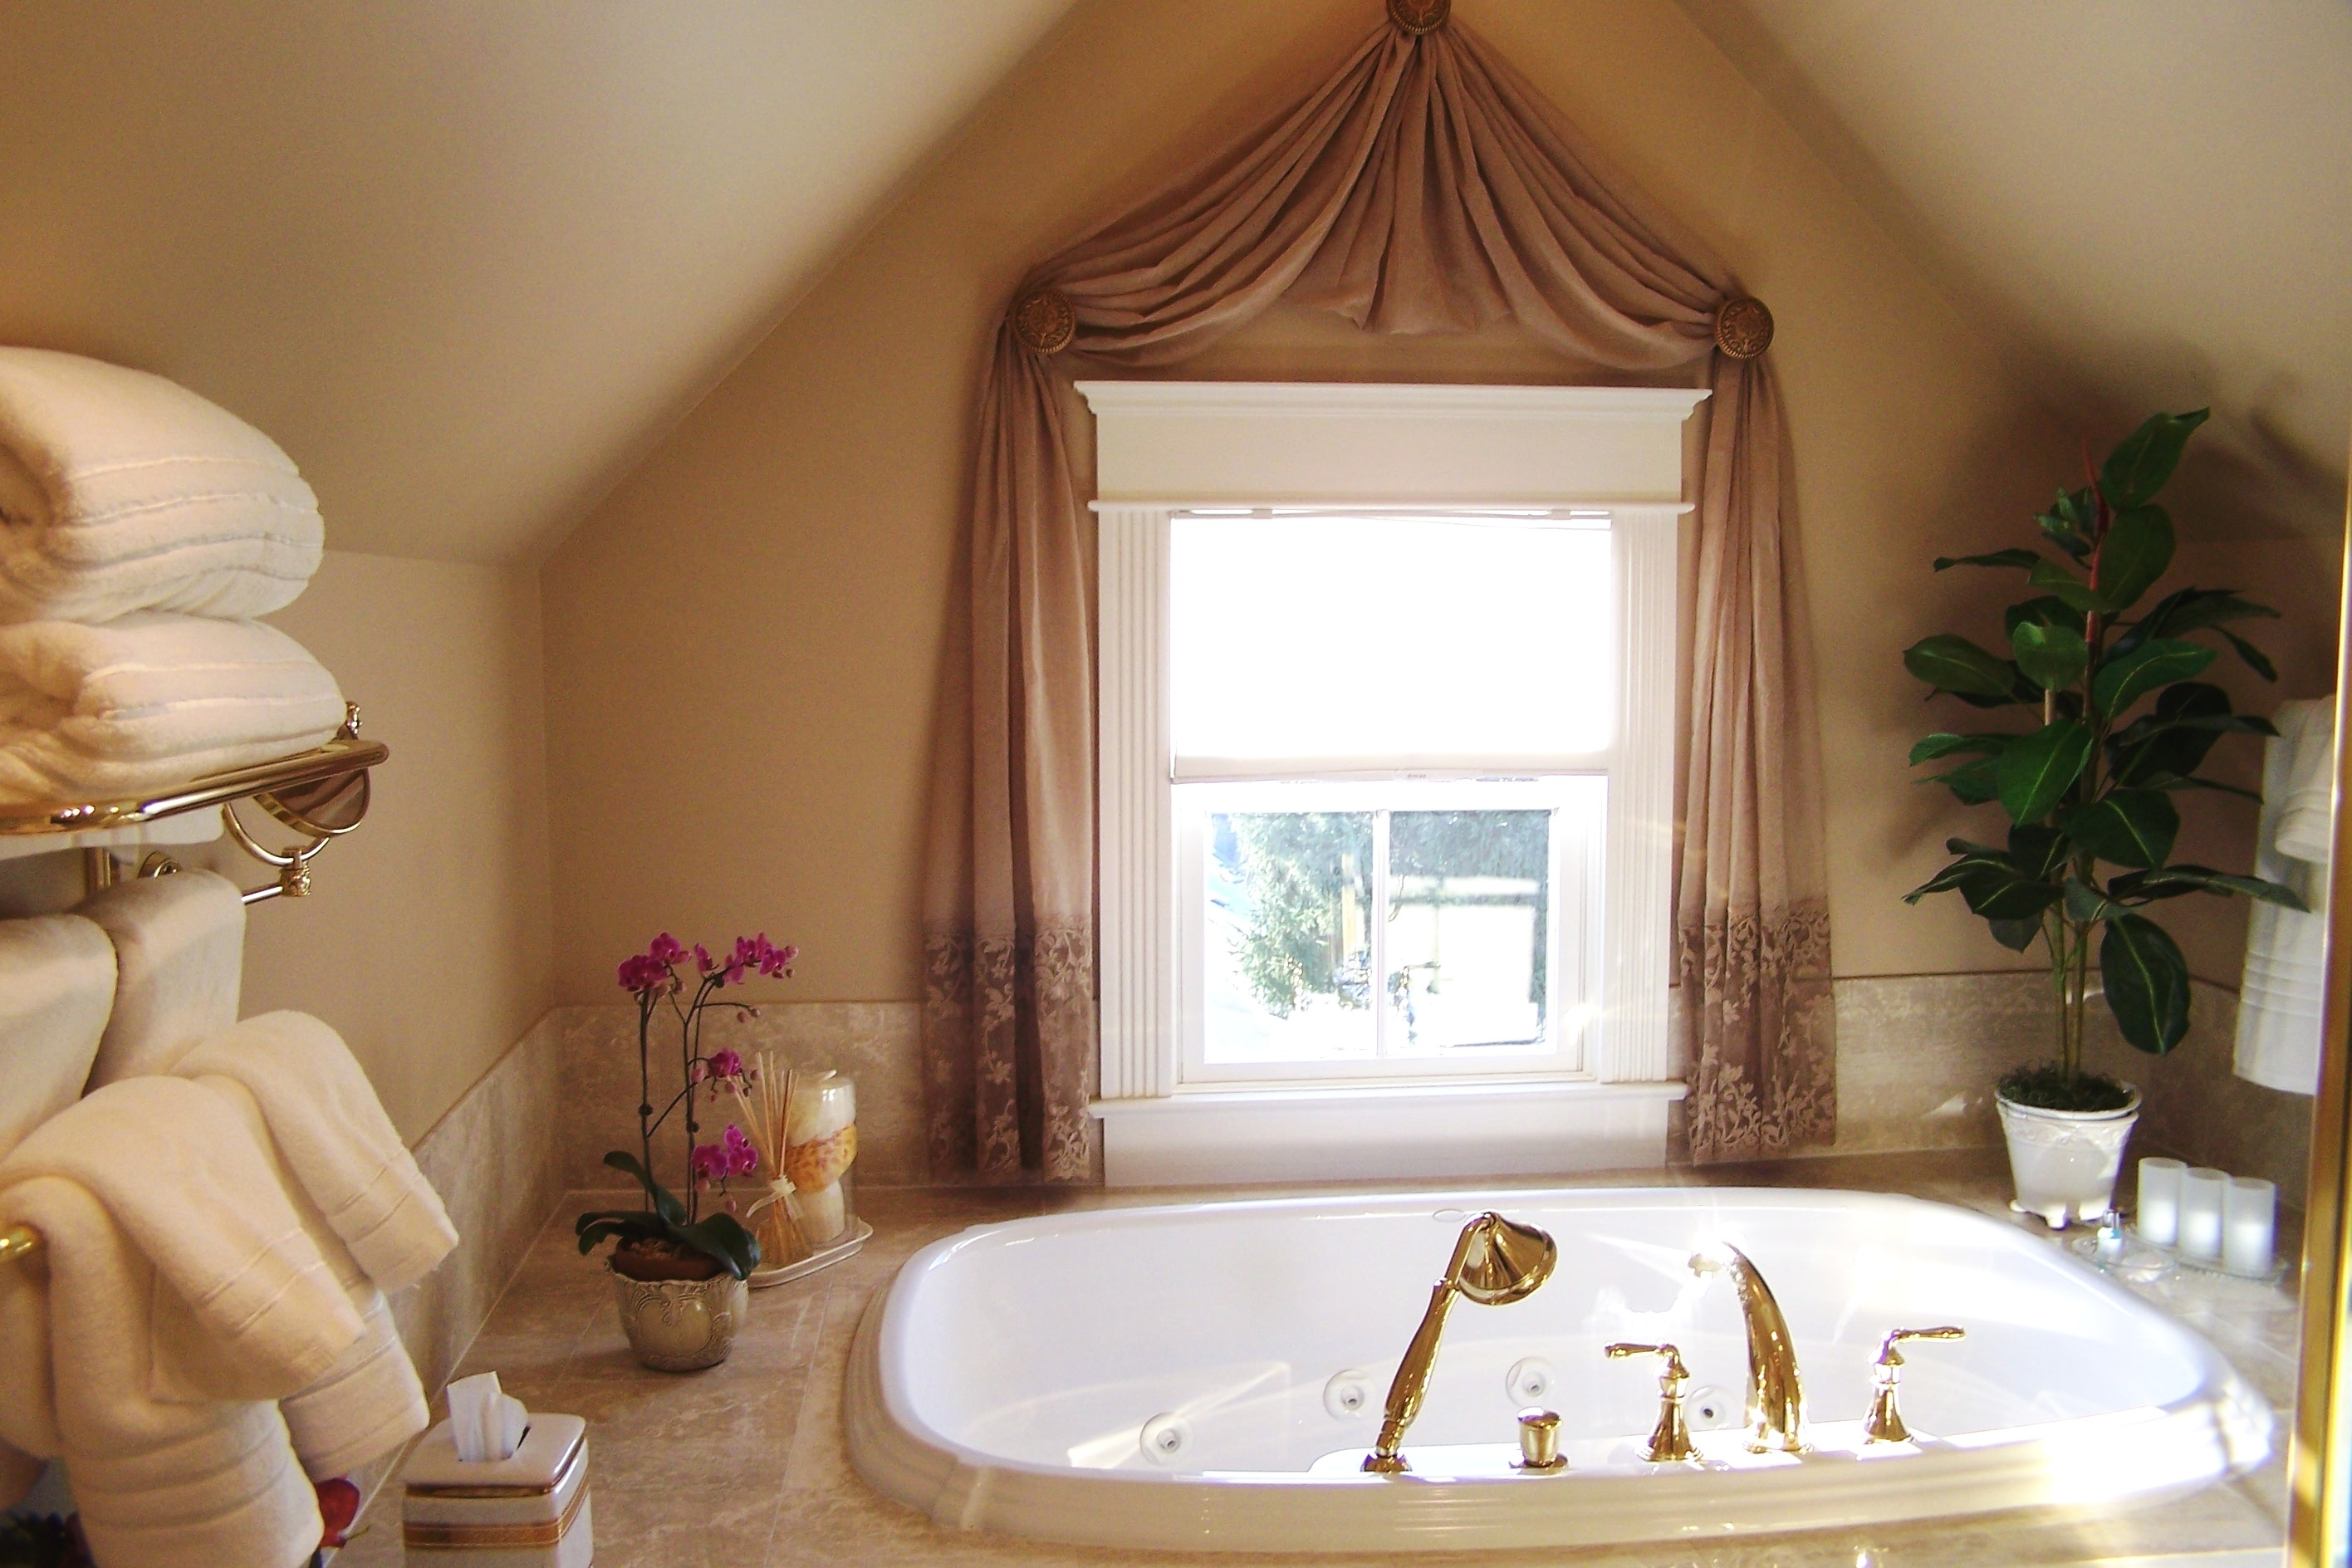 29 Curtains For A Small Bathroom Window Feriall Decor Pertaining To Curtains For Bathrooms Windows (Image 1 of 15)